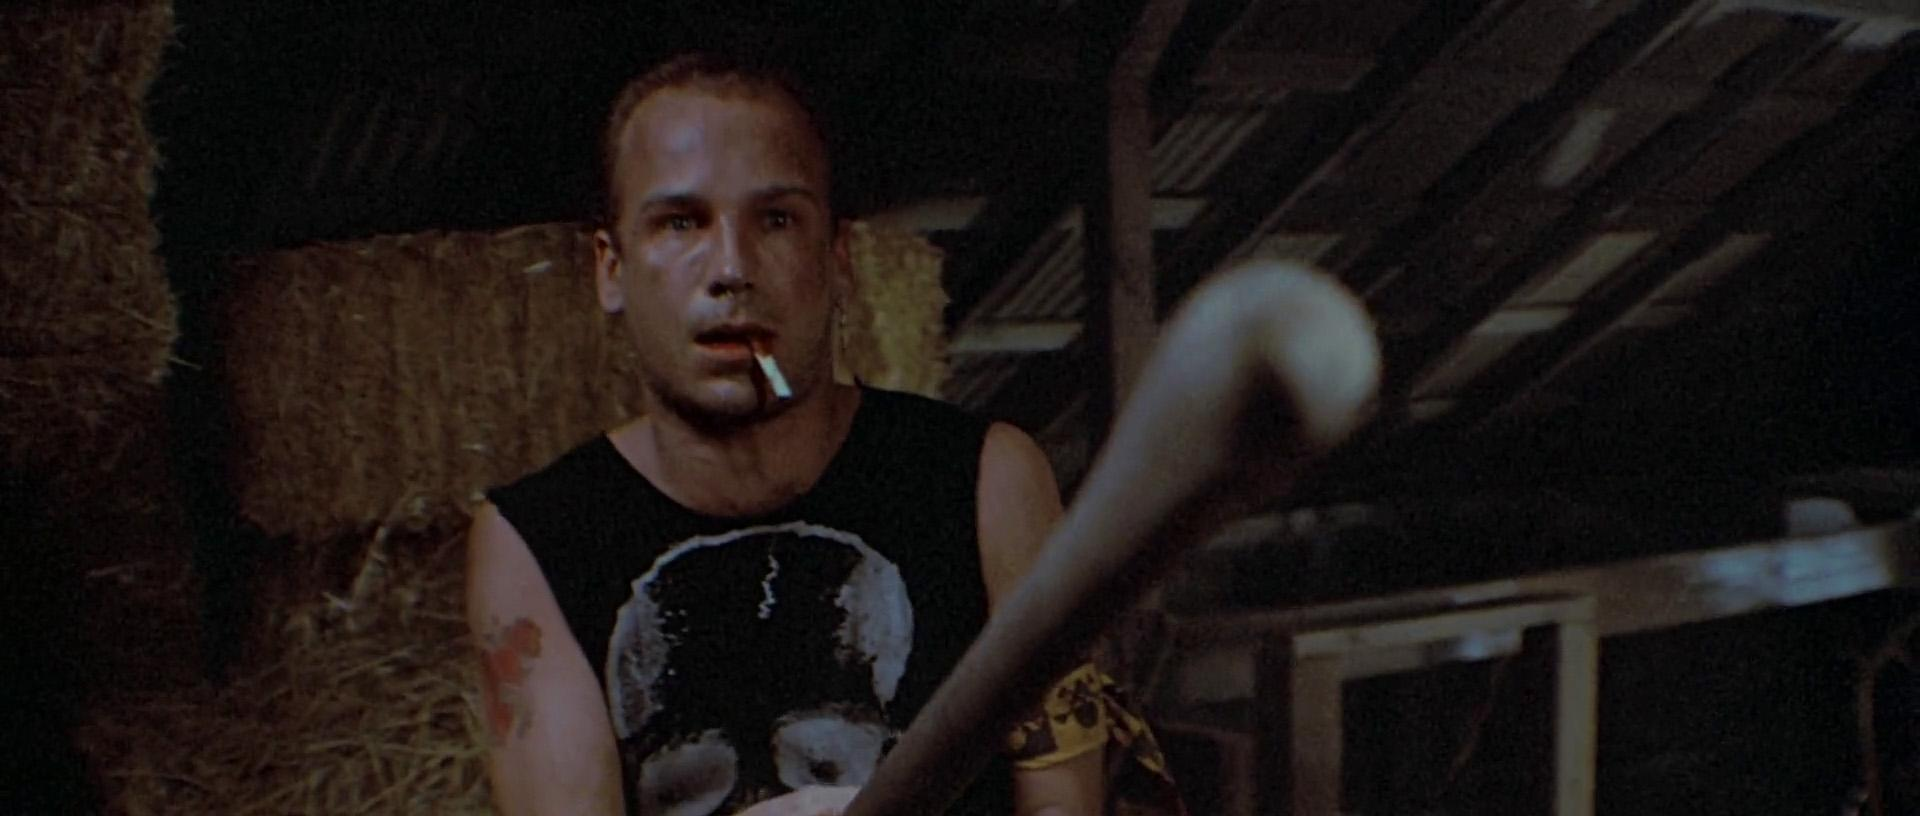 Nick Savage in Friday the 13th Part III (1982)